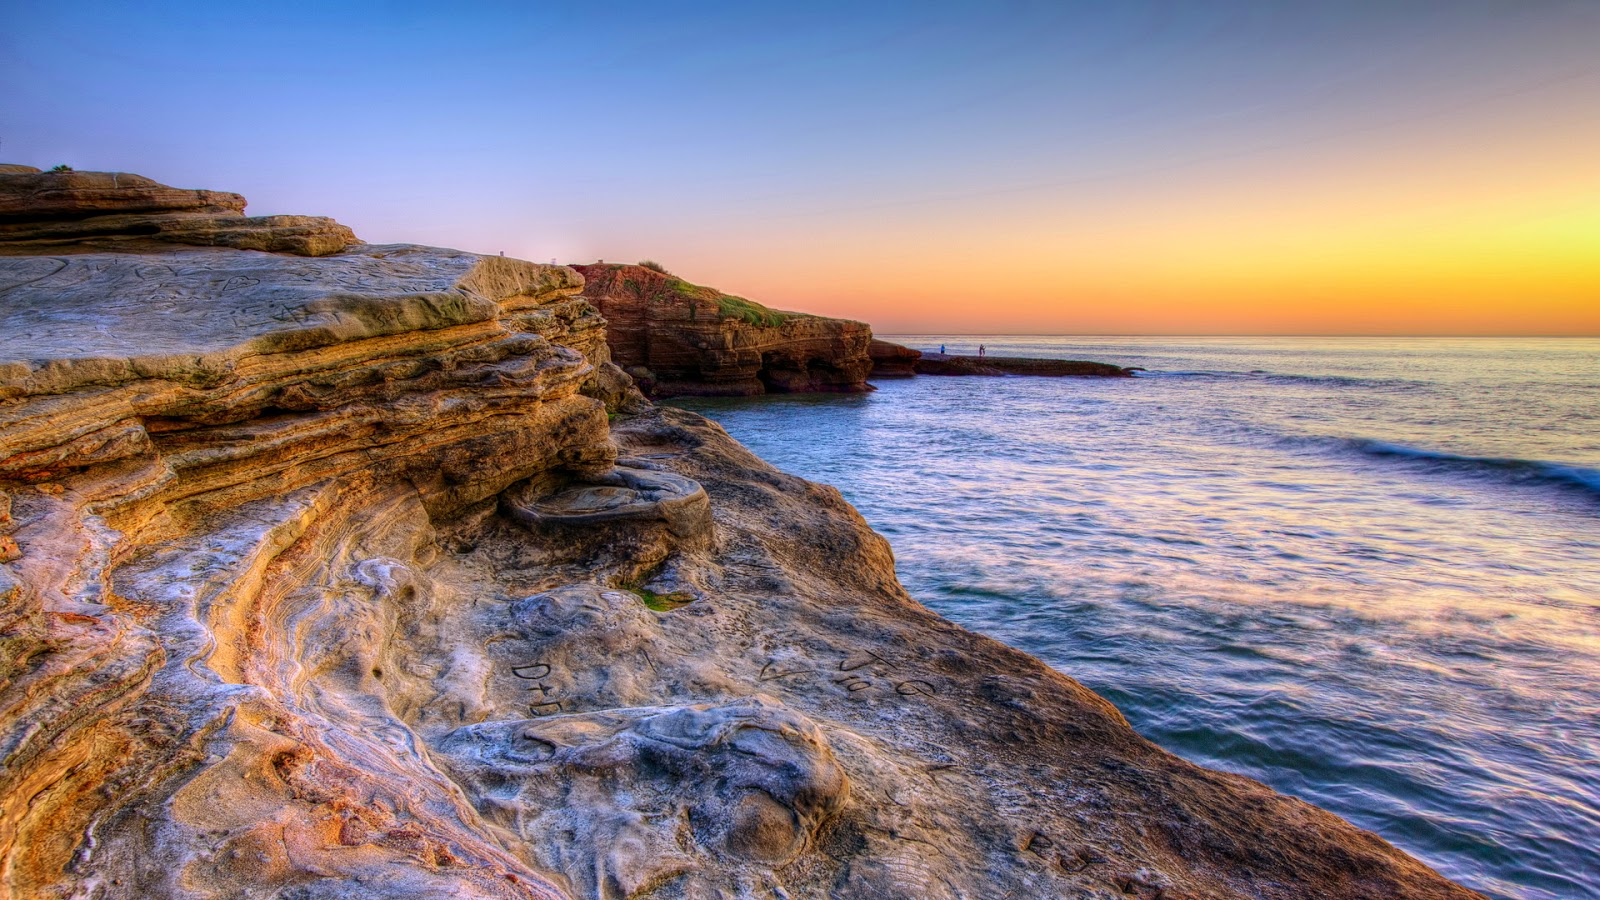 San Diego this is beautiful Rocky beach This wallpaper San Diego is 1600x900